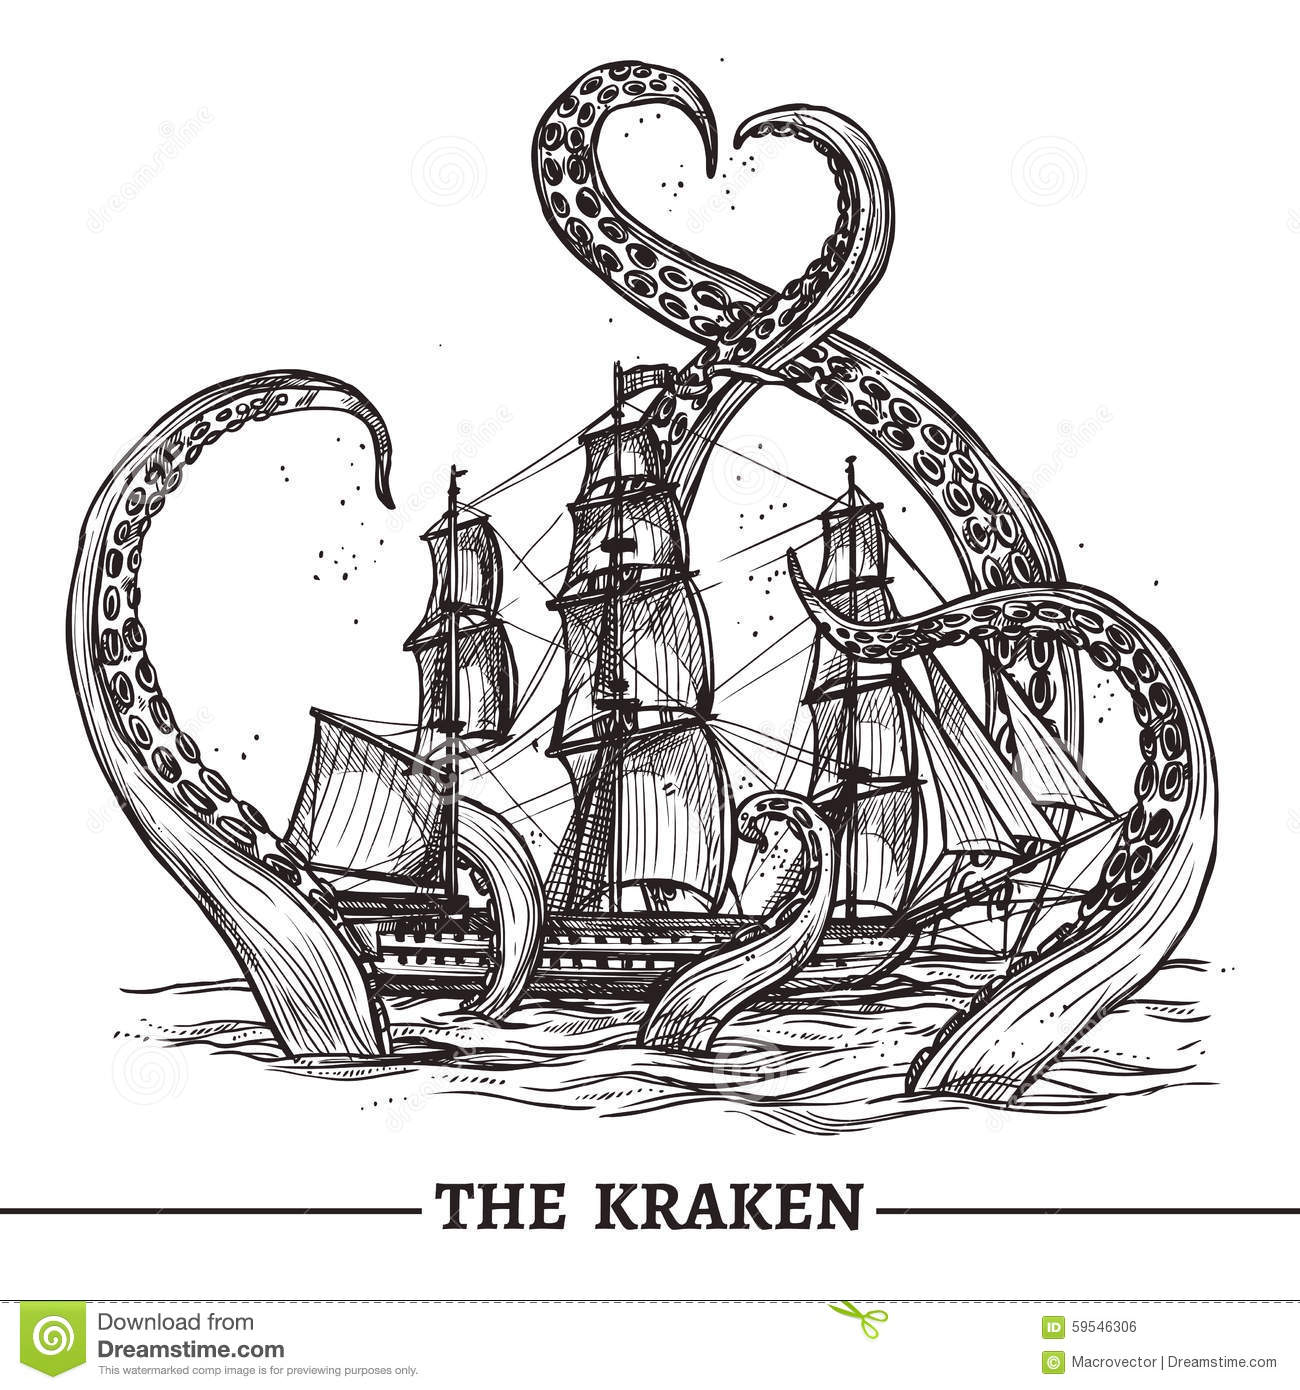 464379 moreover Stock Illustration Ship Octopus Giant Catches Old Style Sail Hand Drawn Vector Illustration Image59546306 in addition Runen as well Steam 20clipart 20train 20engine furthermore Schwarzkopf. on old style